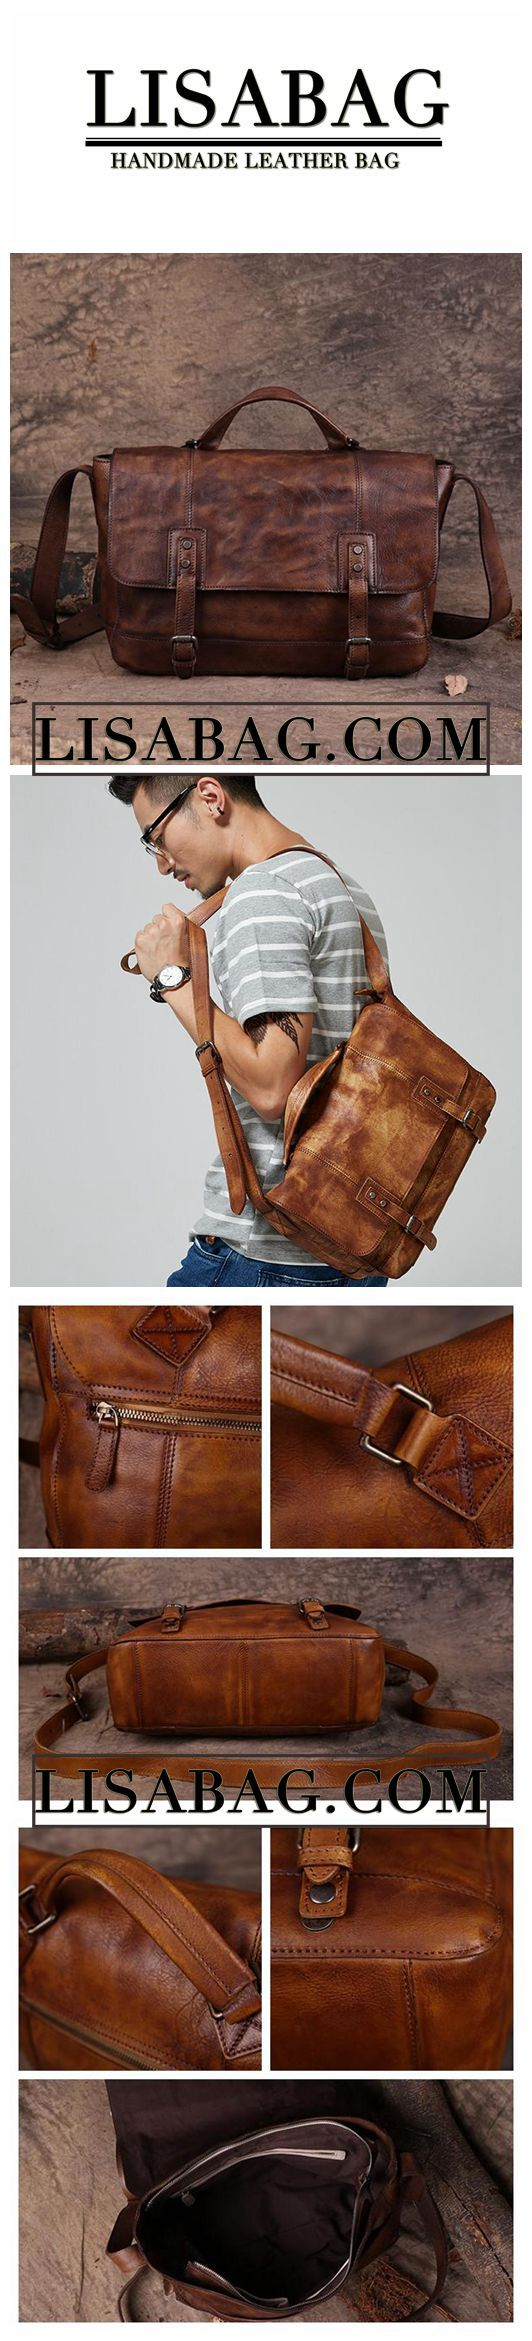 Handmade Leather Briefcase Men's Messenger Bag 13'' Laptop Bag in Dark Brown 15003